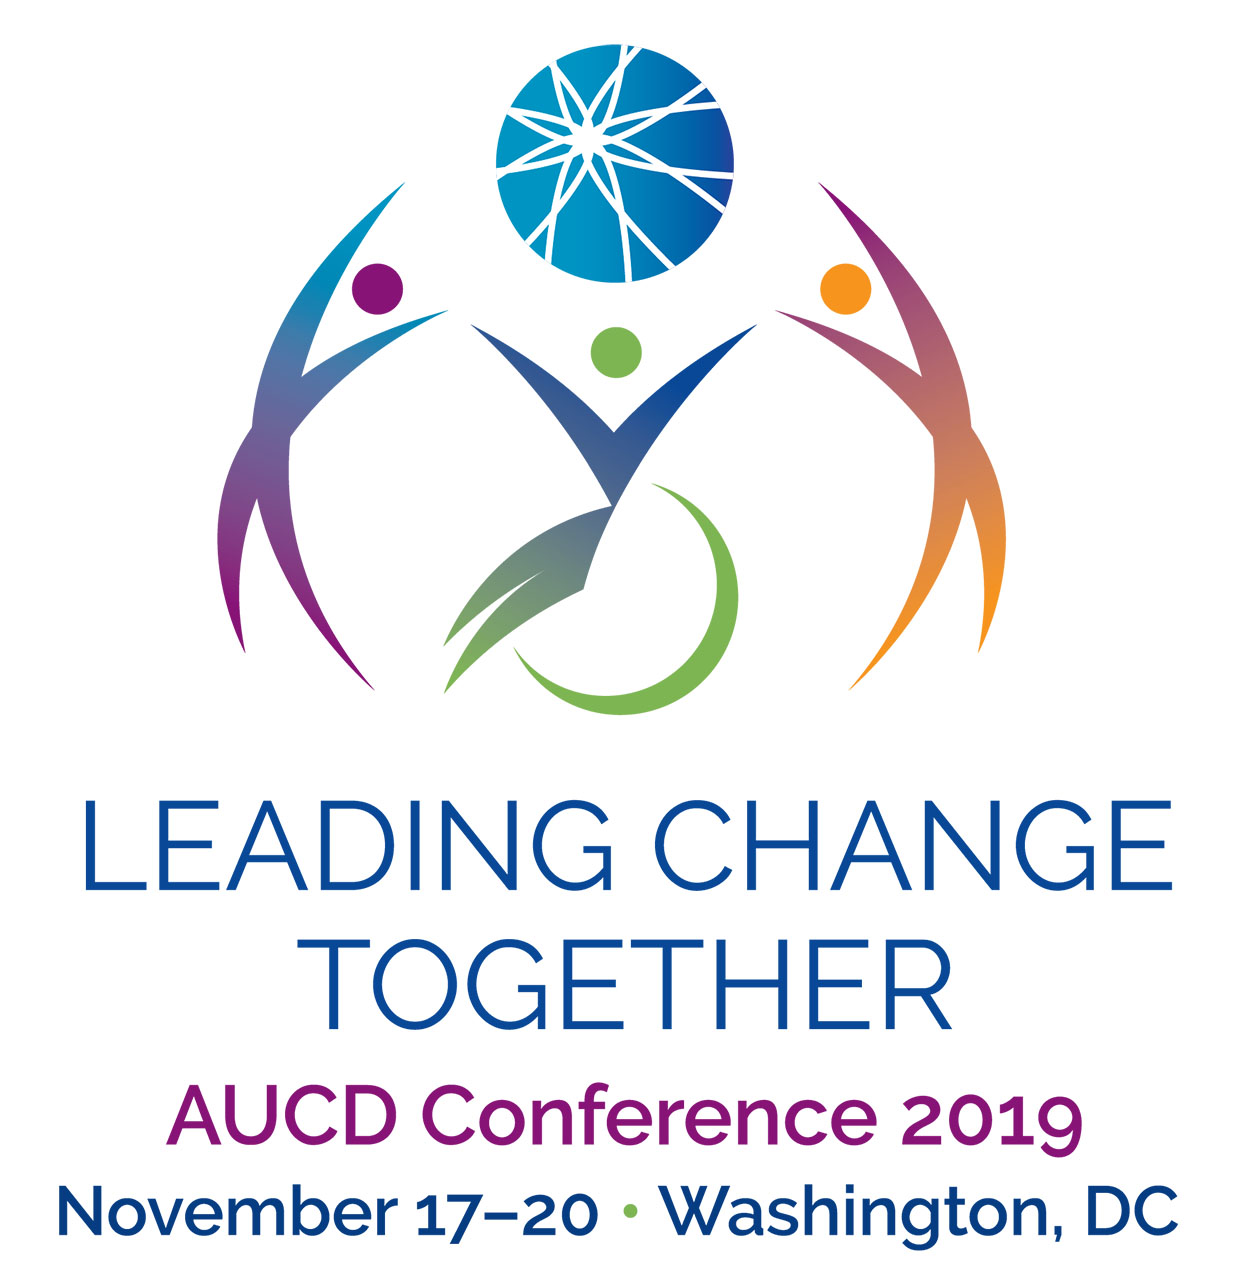 Conference logo: people of different ages, shapes, sizes, genders, & abilities are colored orange to purple to blue. Text: AUCD Conference 2019. We All Belong Here. Achieving Inclusive Communities. November 11-14, Washington, DC